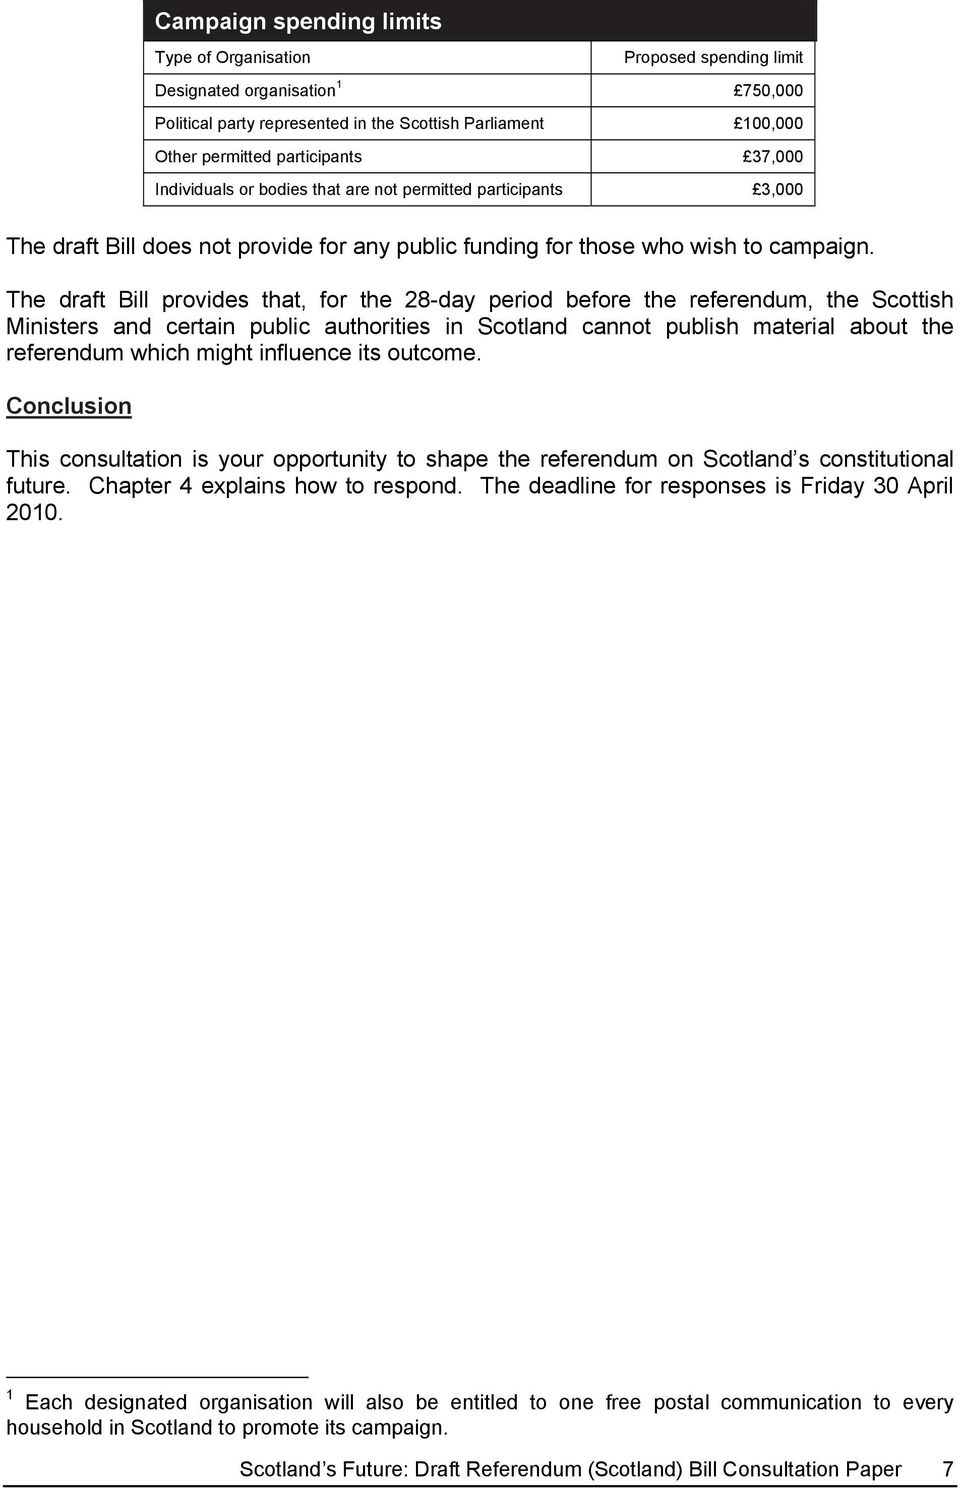 The draft Bill provides that, for the 28-day period before the referendum, the Scottish Ministers and certain public authorities in Scotland cannot publish material about the referendum which might